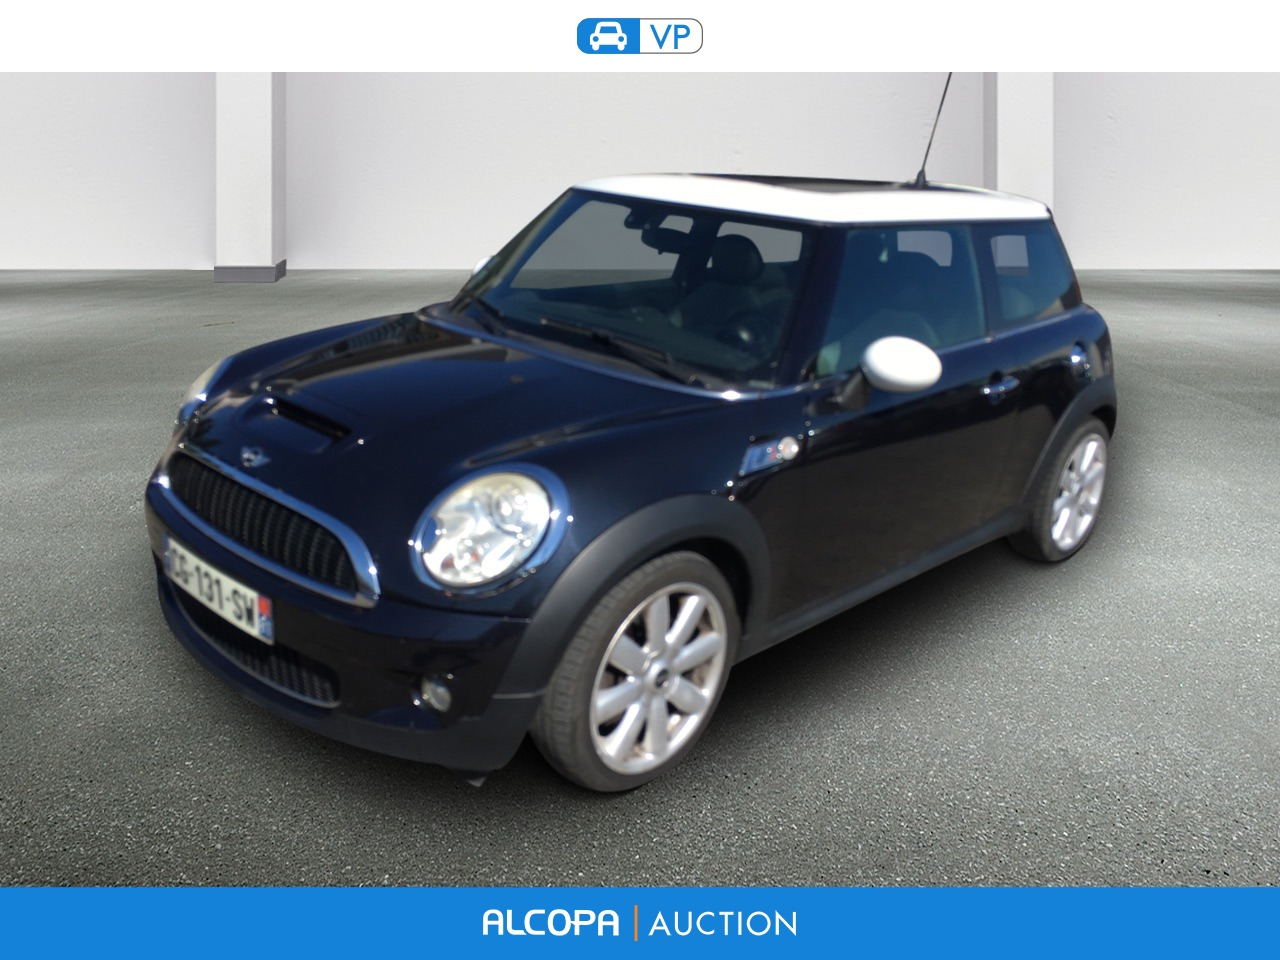 mini mini r56 mini 1 6i 175 cooper s alcopa auction. Black Bedroom Furniture Sets. Home Design Ideas